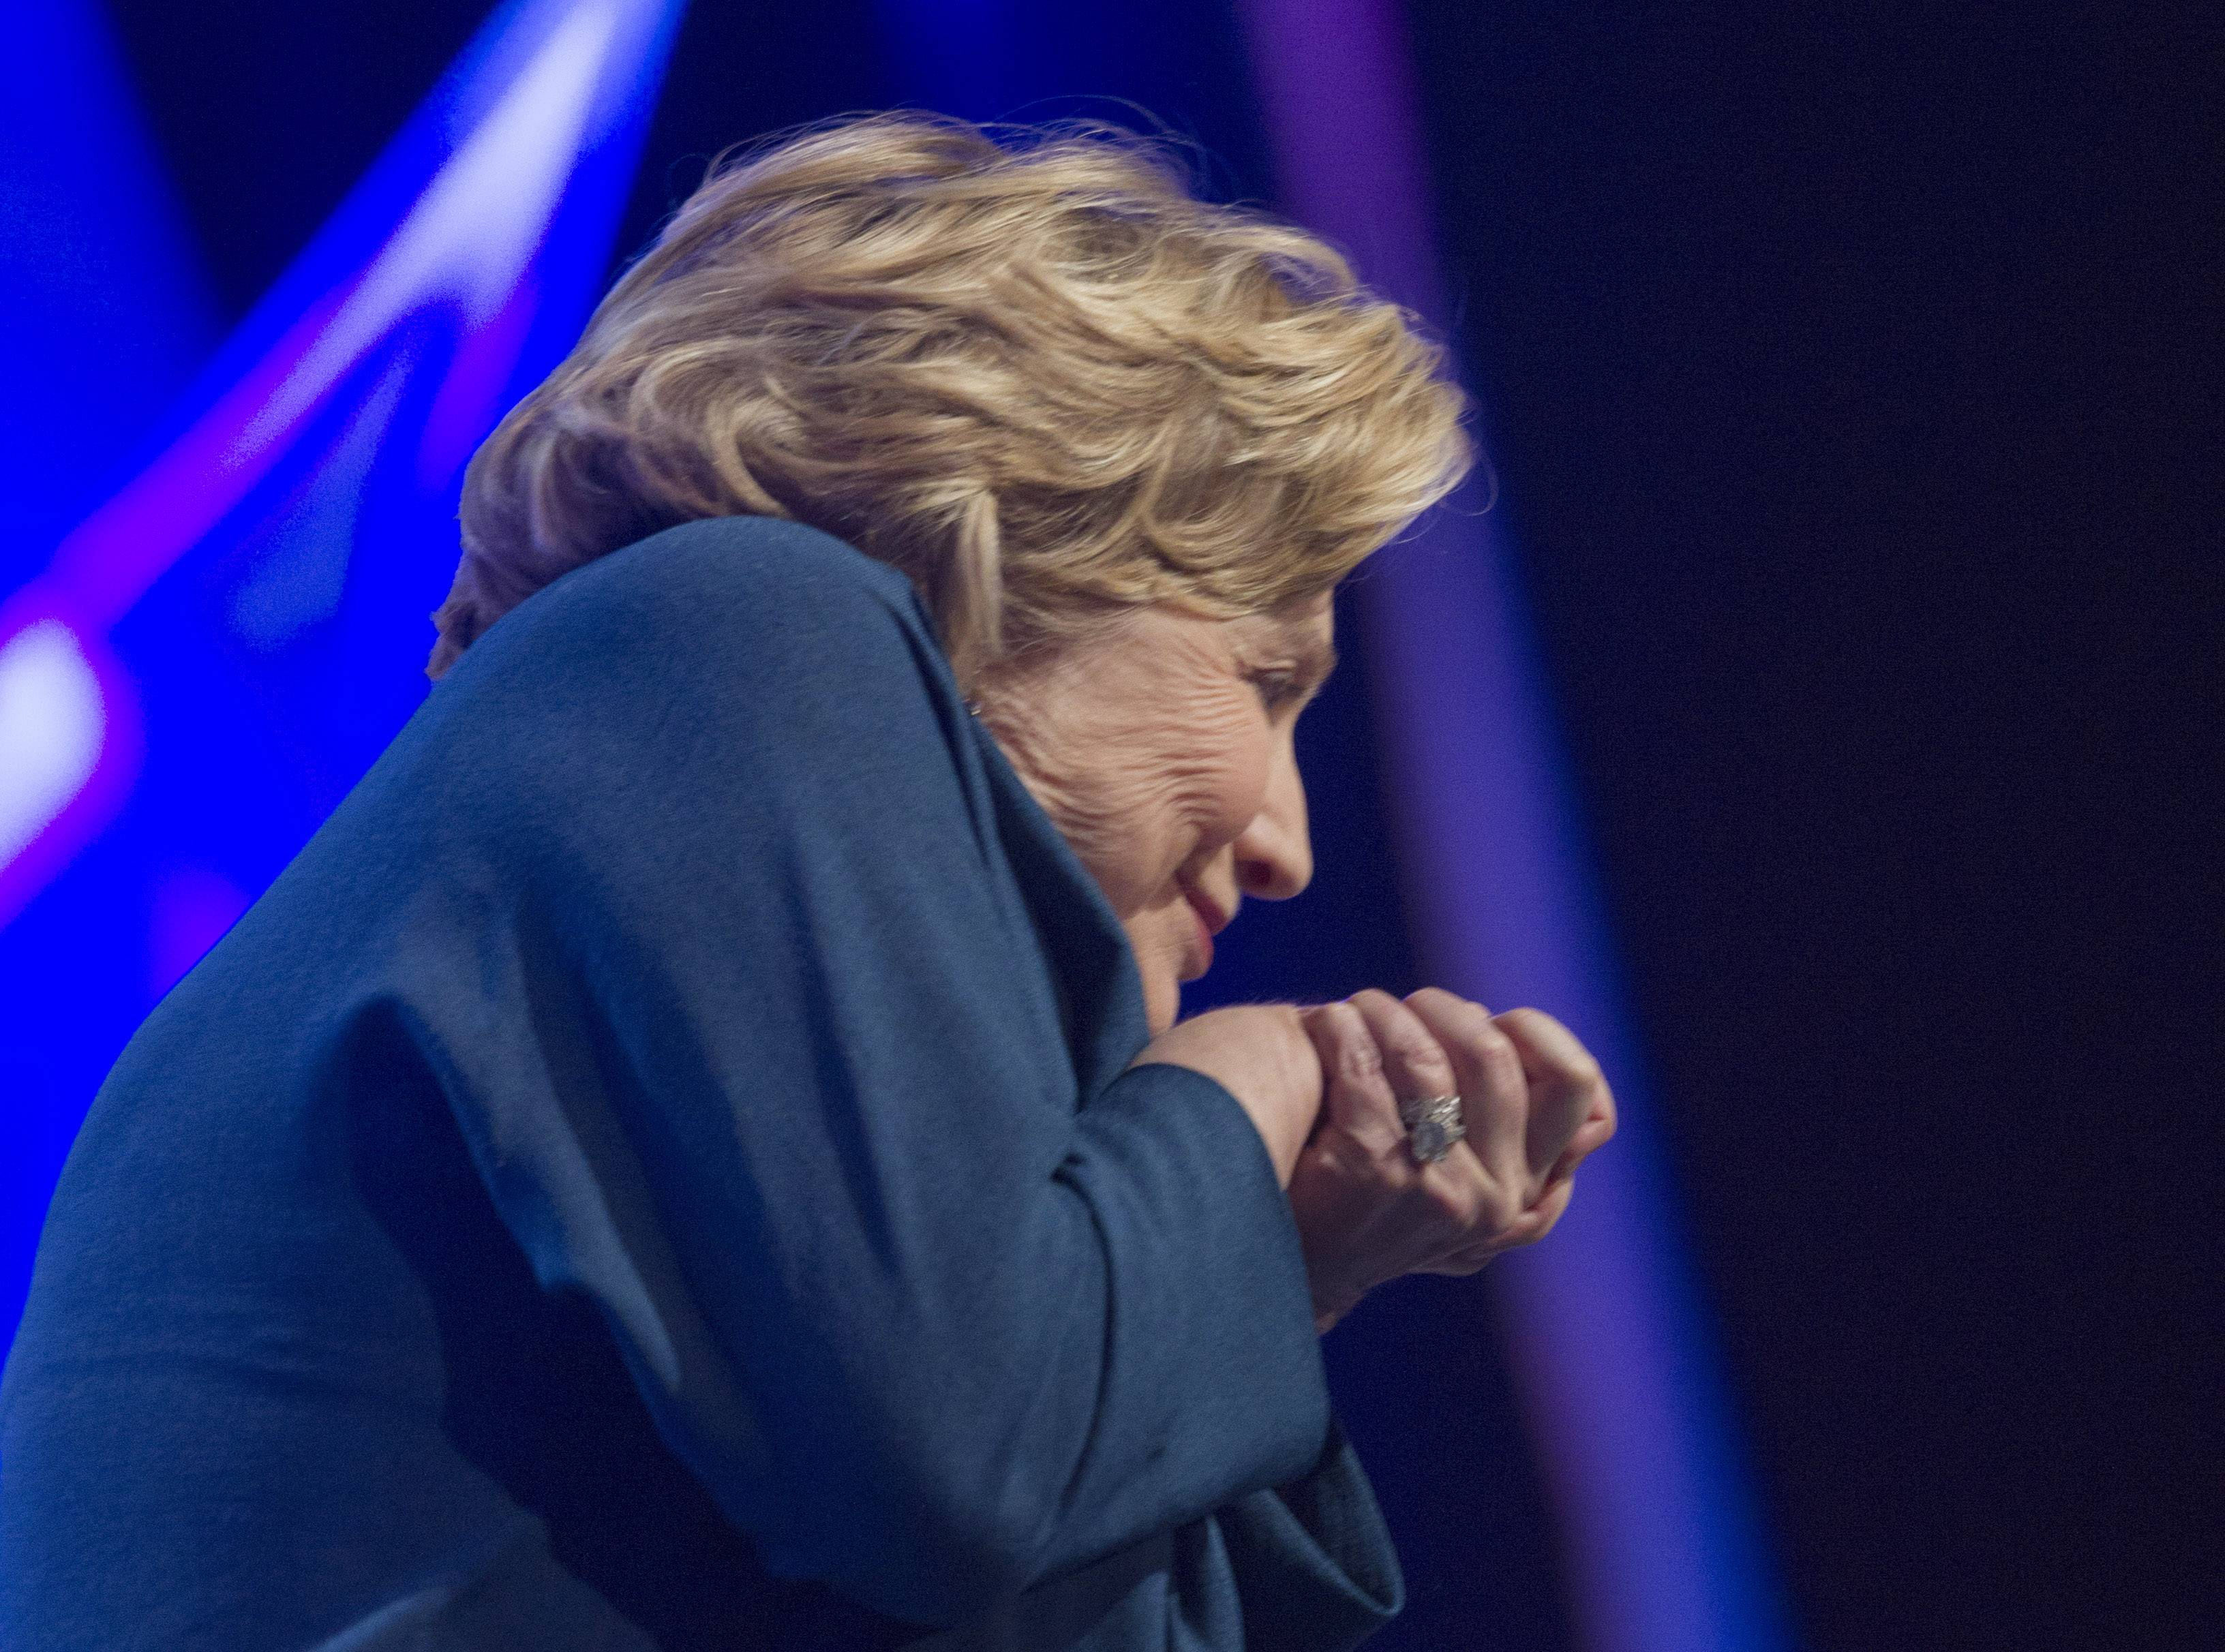 Former U.S. Secretary of State Hillary Rodham Clinton ducks as an object is thrown onstage during an address to members of the Institute of Scrap Recycling Industries during their annual convention at the Mandalay Bay Convention Center, Thursday, April 10, 2014, in Las Vegas.